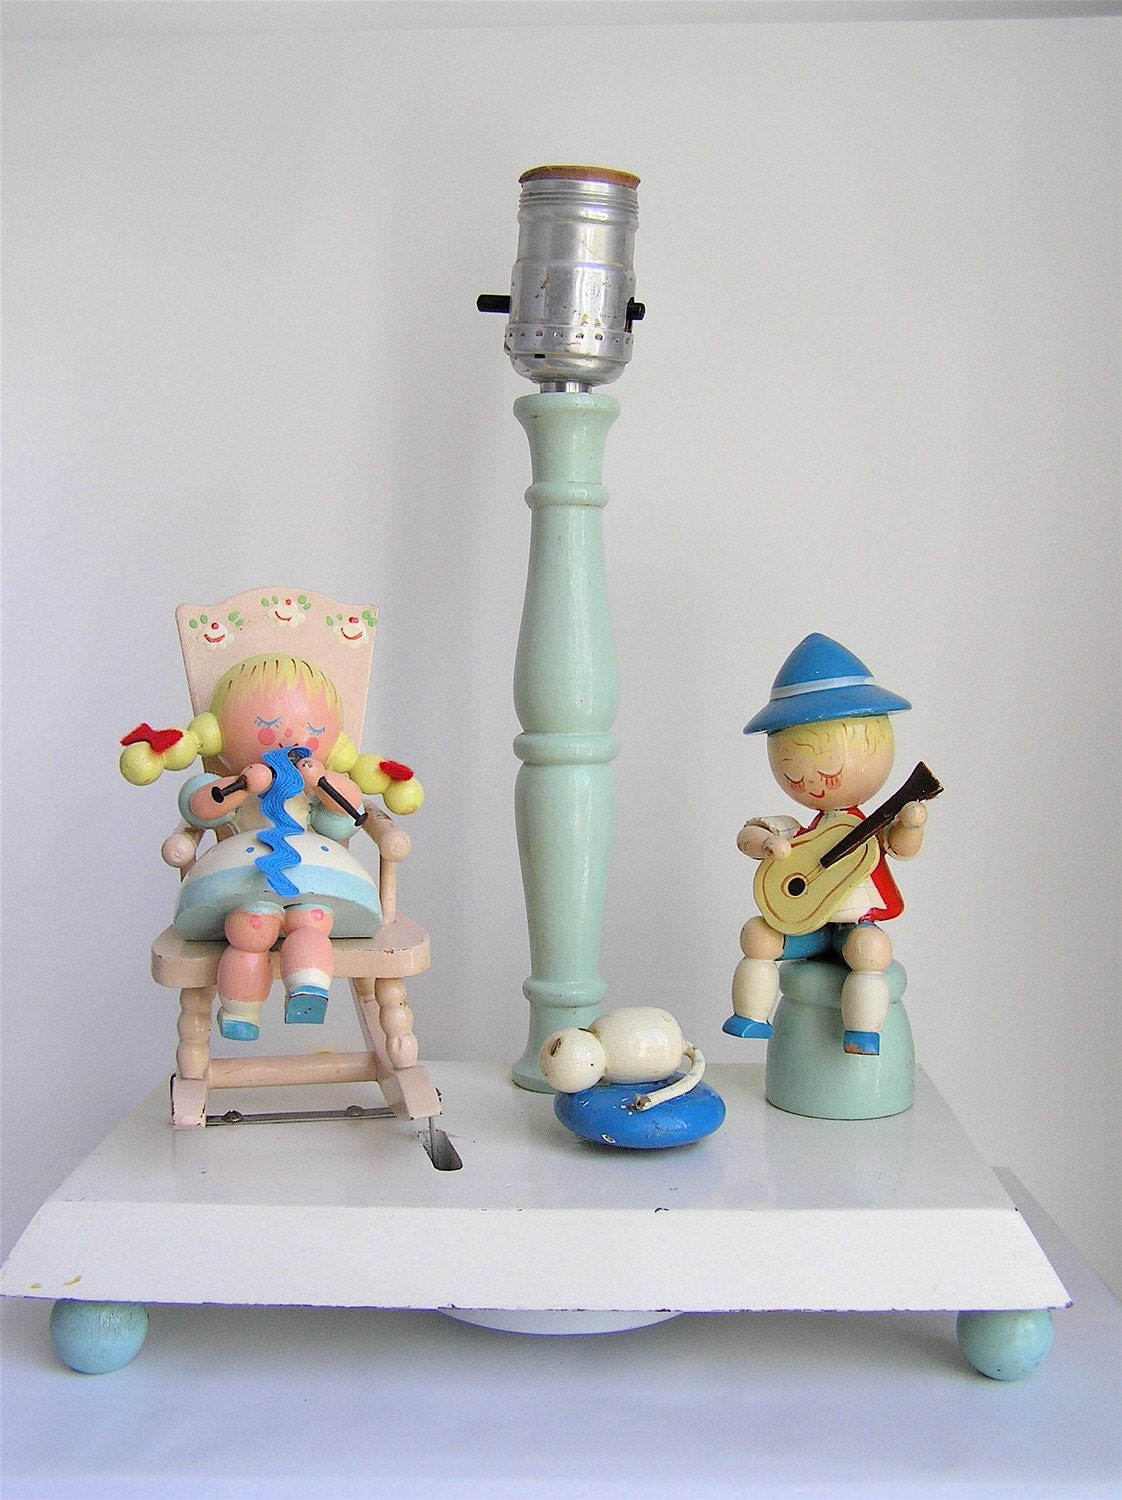 Sweet Vintage Irmi Nursery Animated Musical Lamp  Rocking Chair